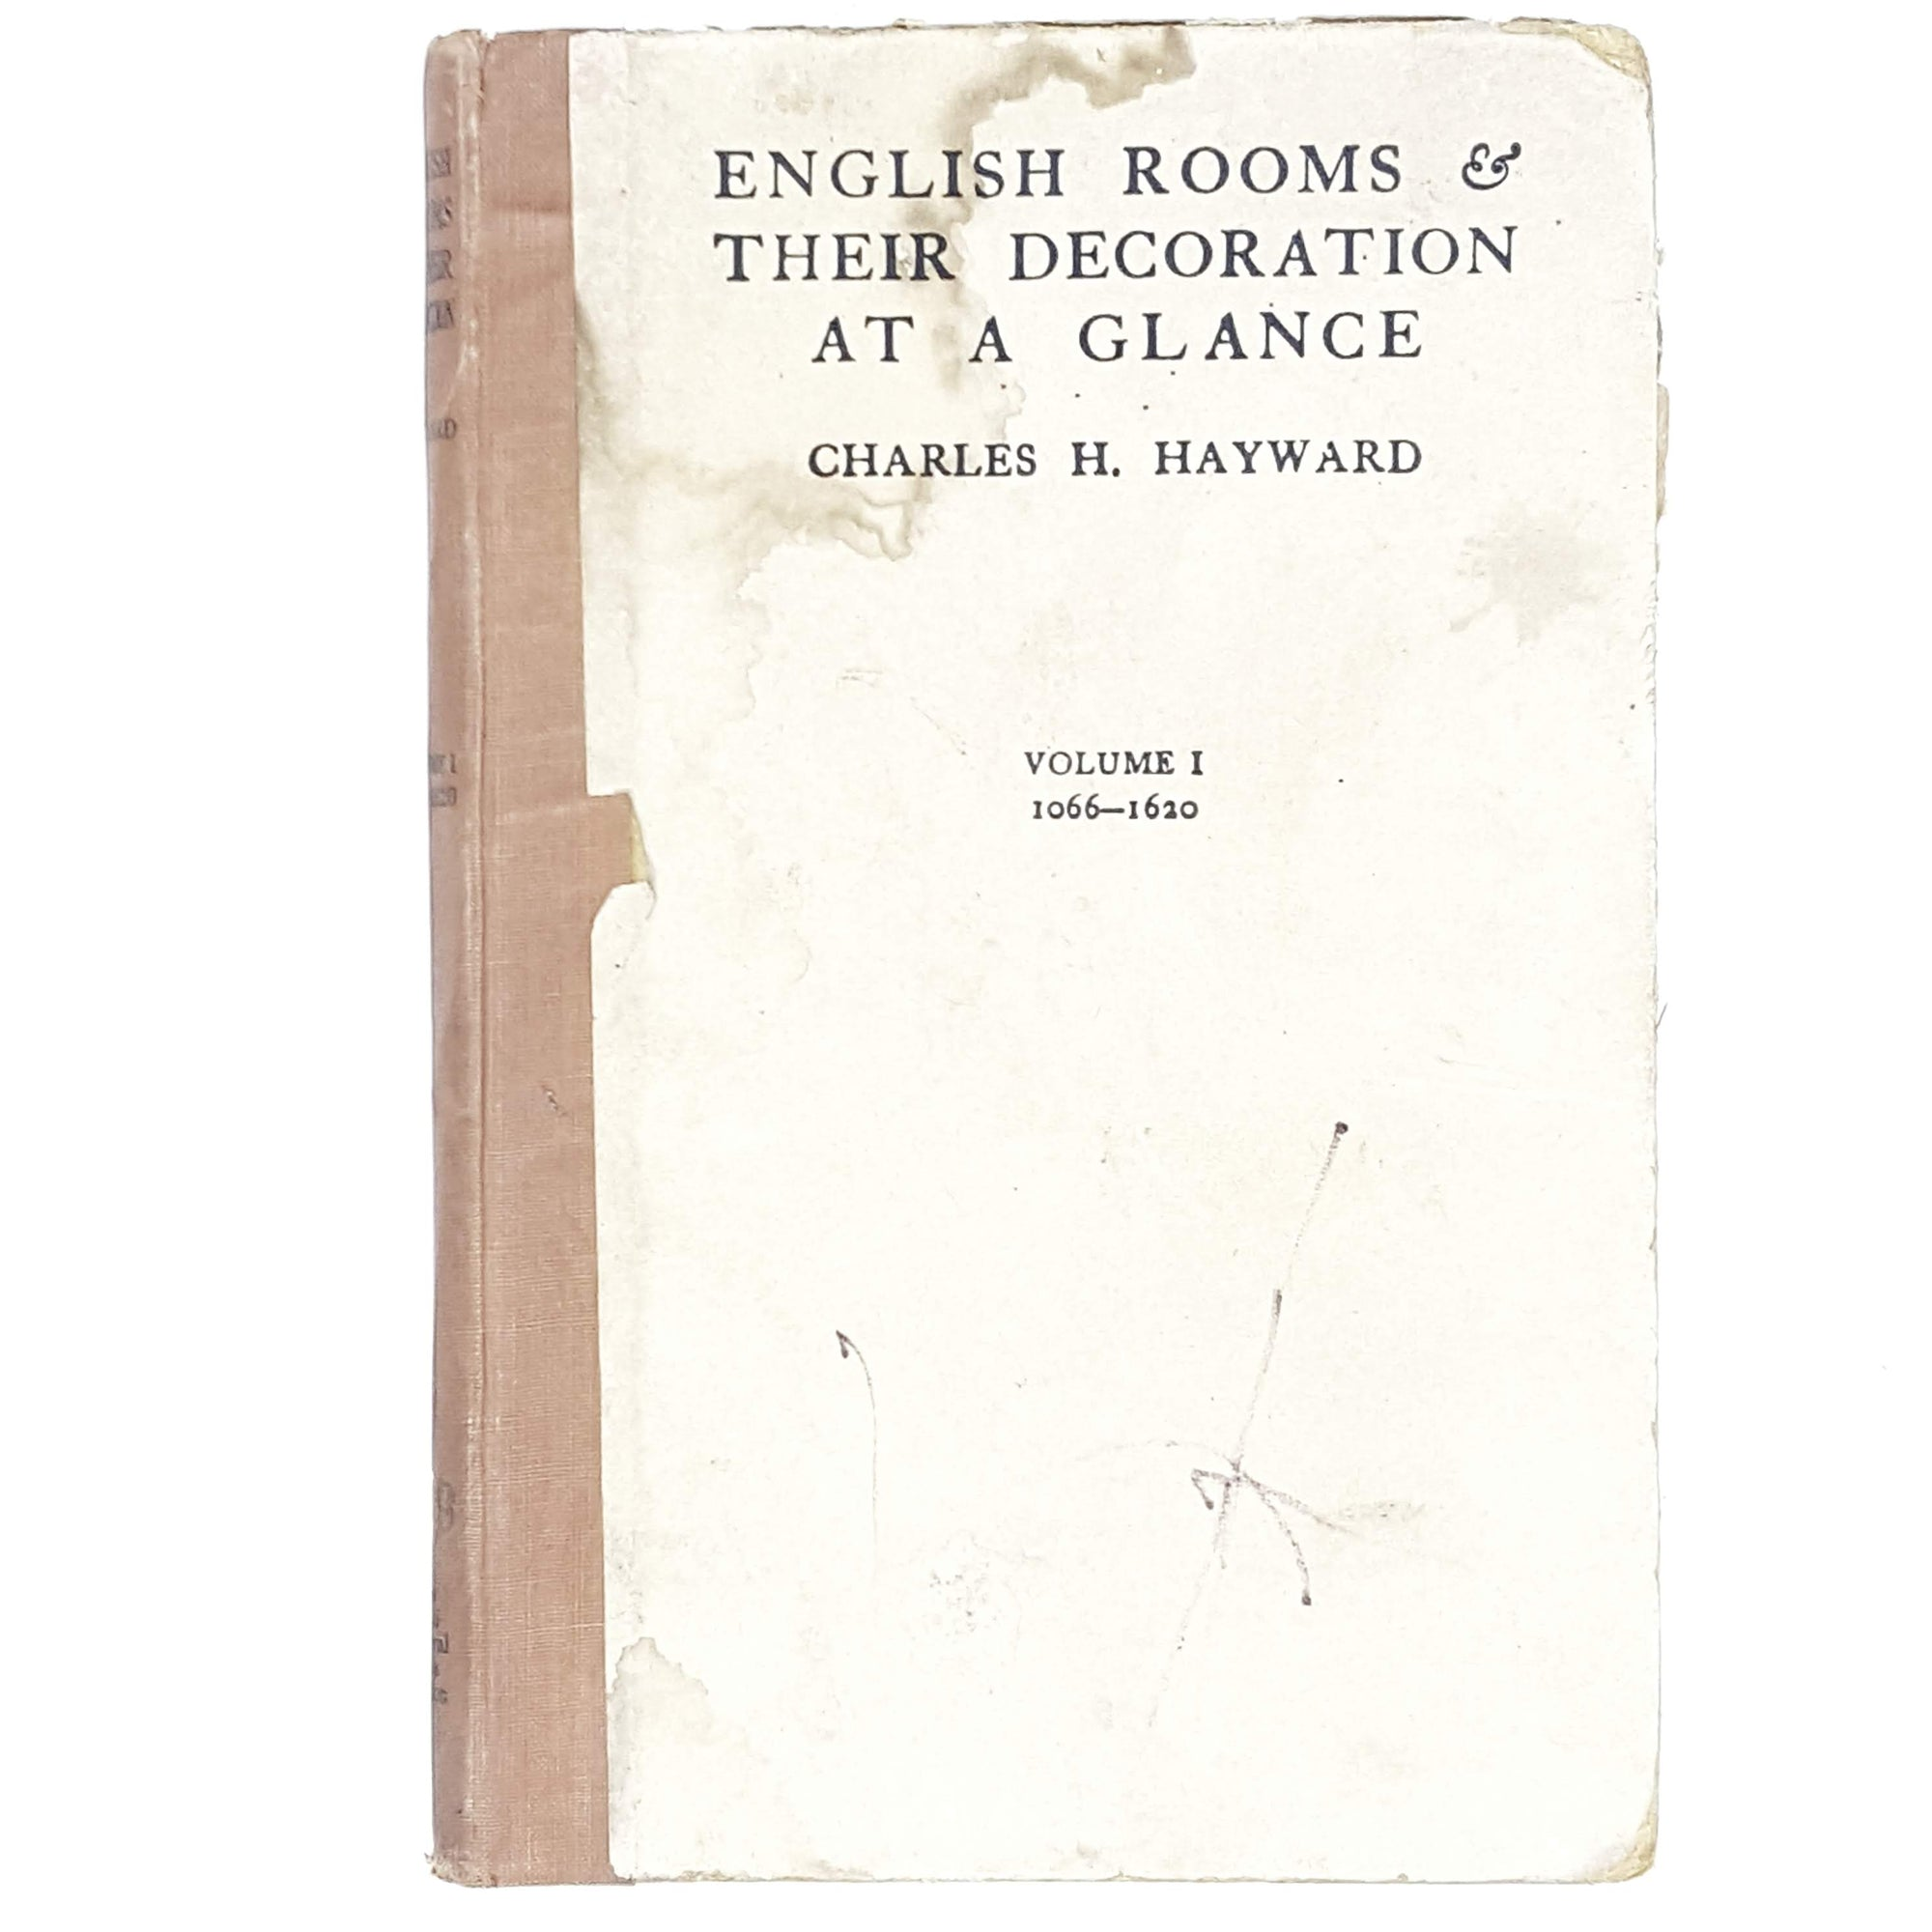 Illustrated English Rooms & Their Decoration at a Glance by Charles H. Hayward 1925